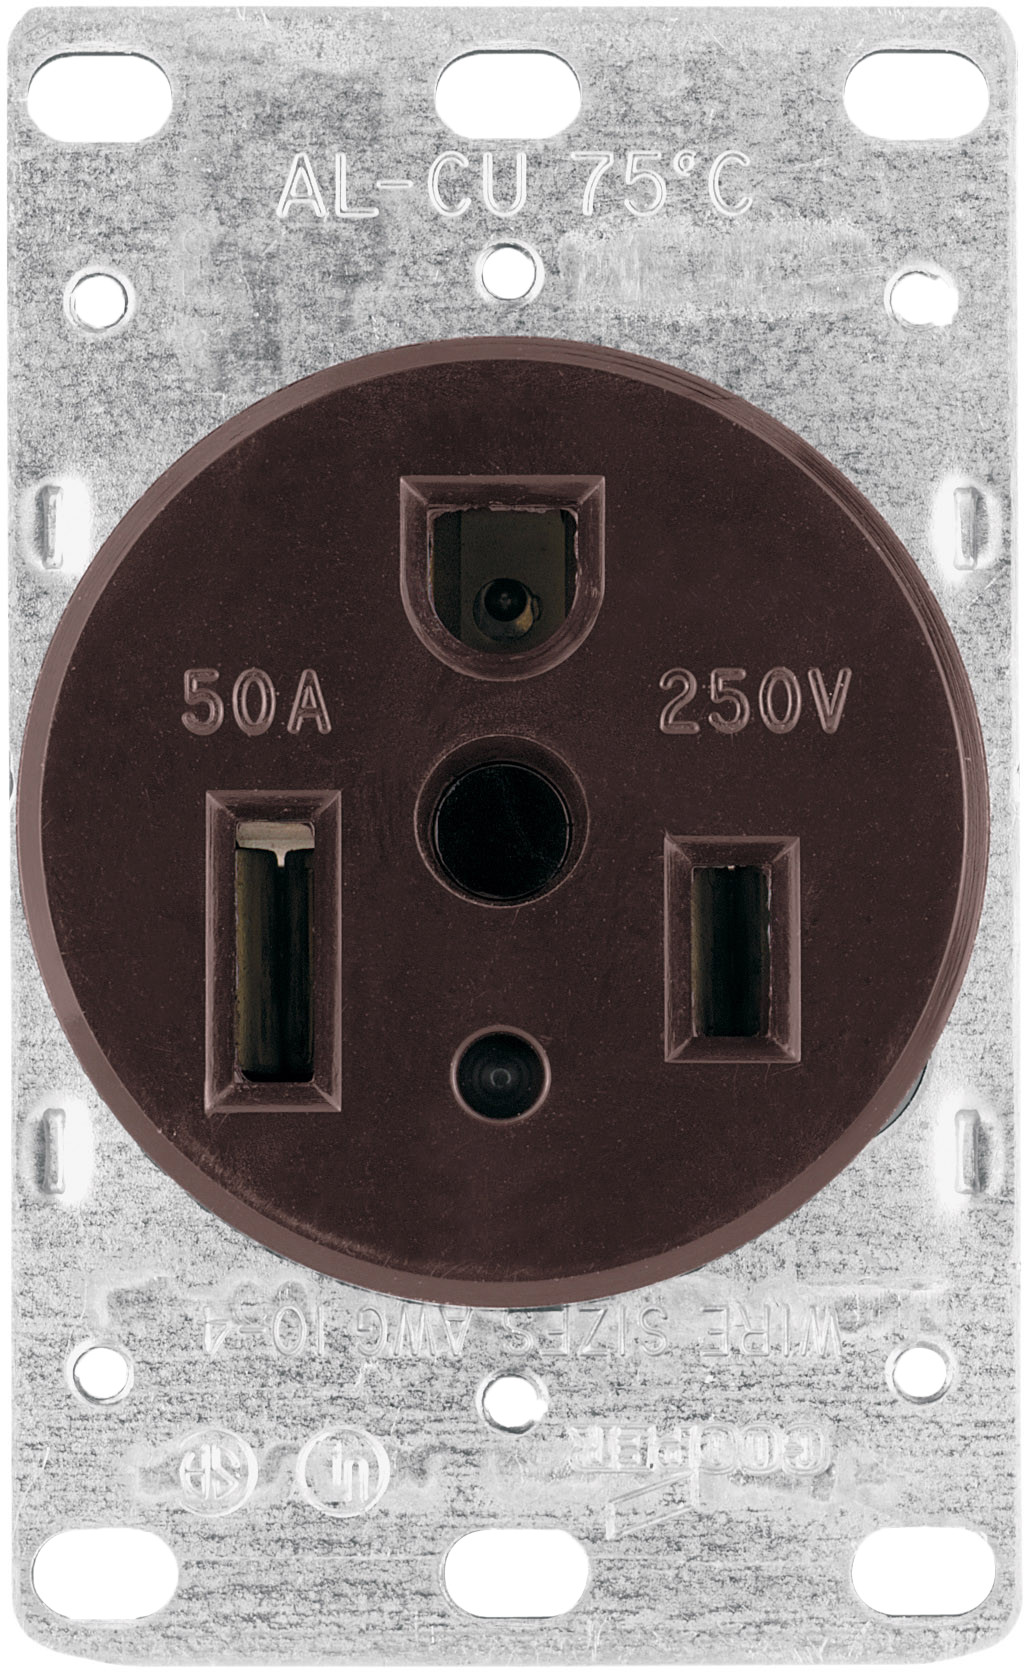 wire grounded power receptacle tap to expand [ 1029 x 1673 Pixel ]